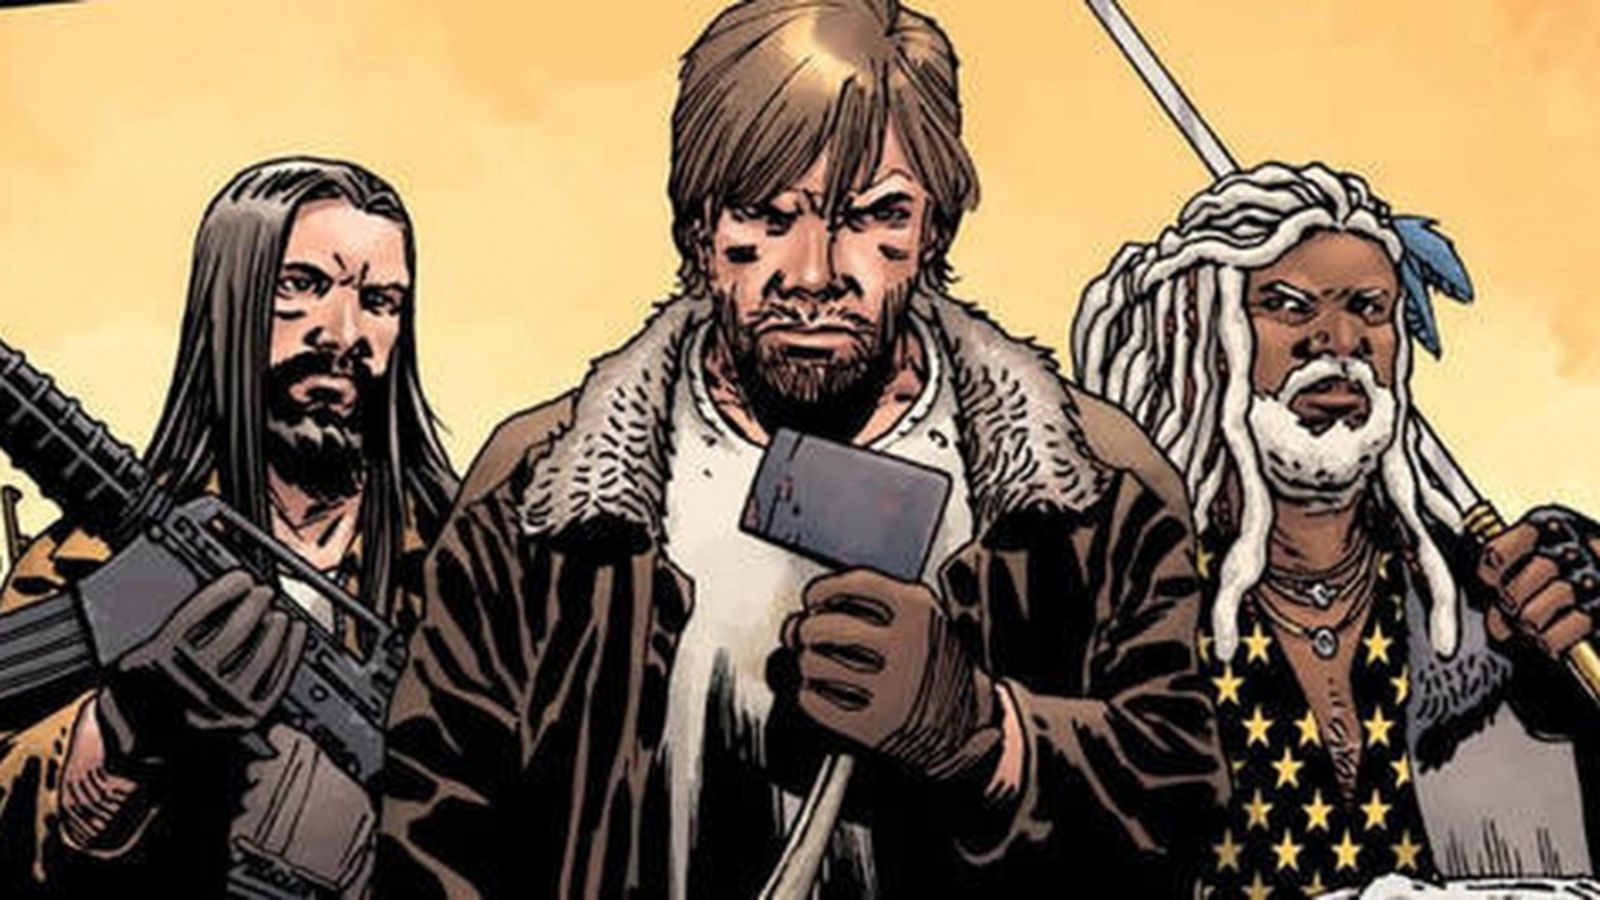 The Walking Dead Comic Will Eventually End Says Writer Robert Kirkman